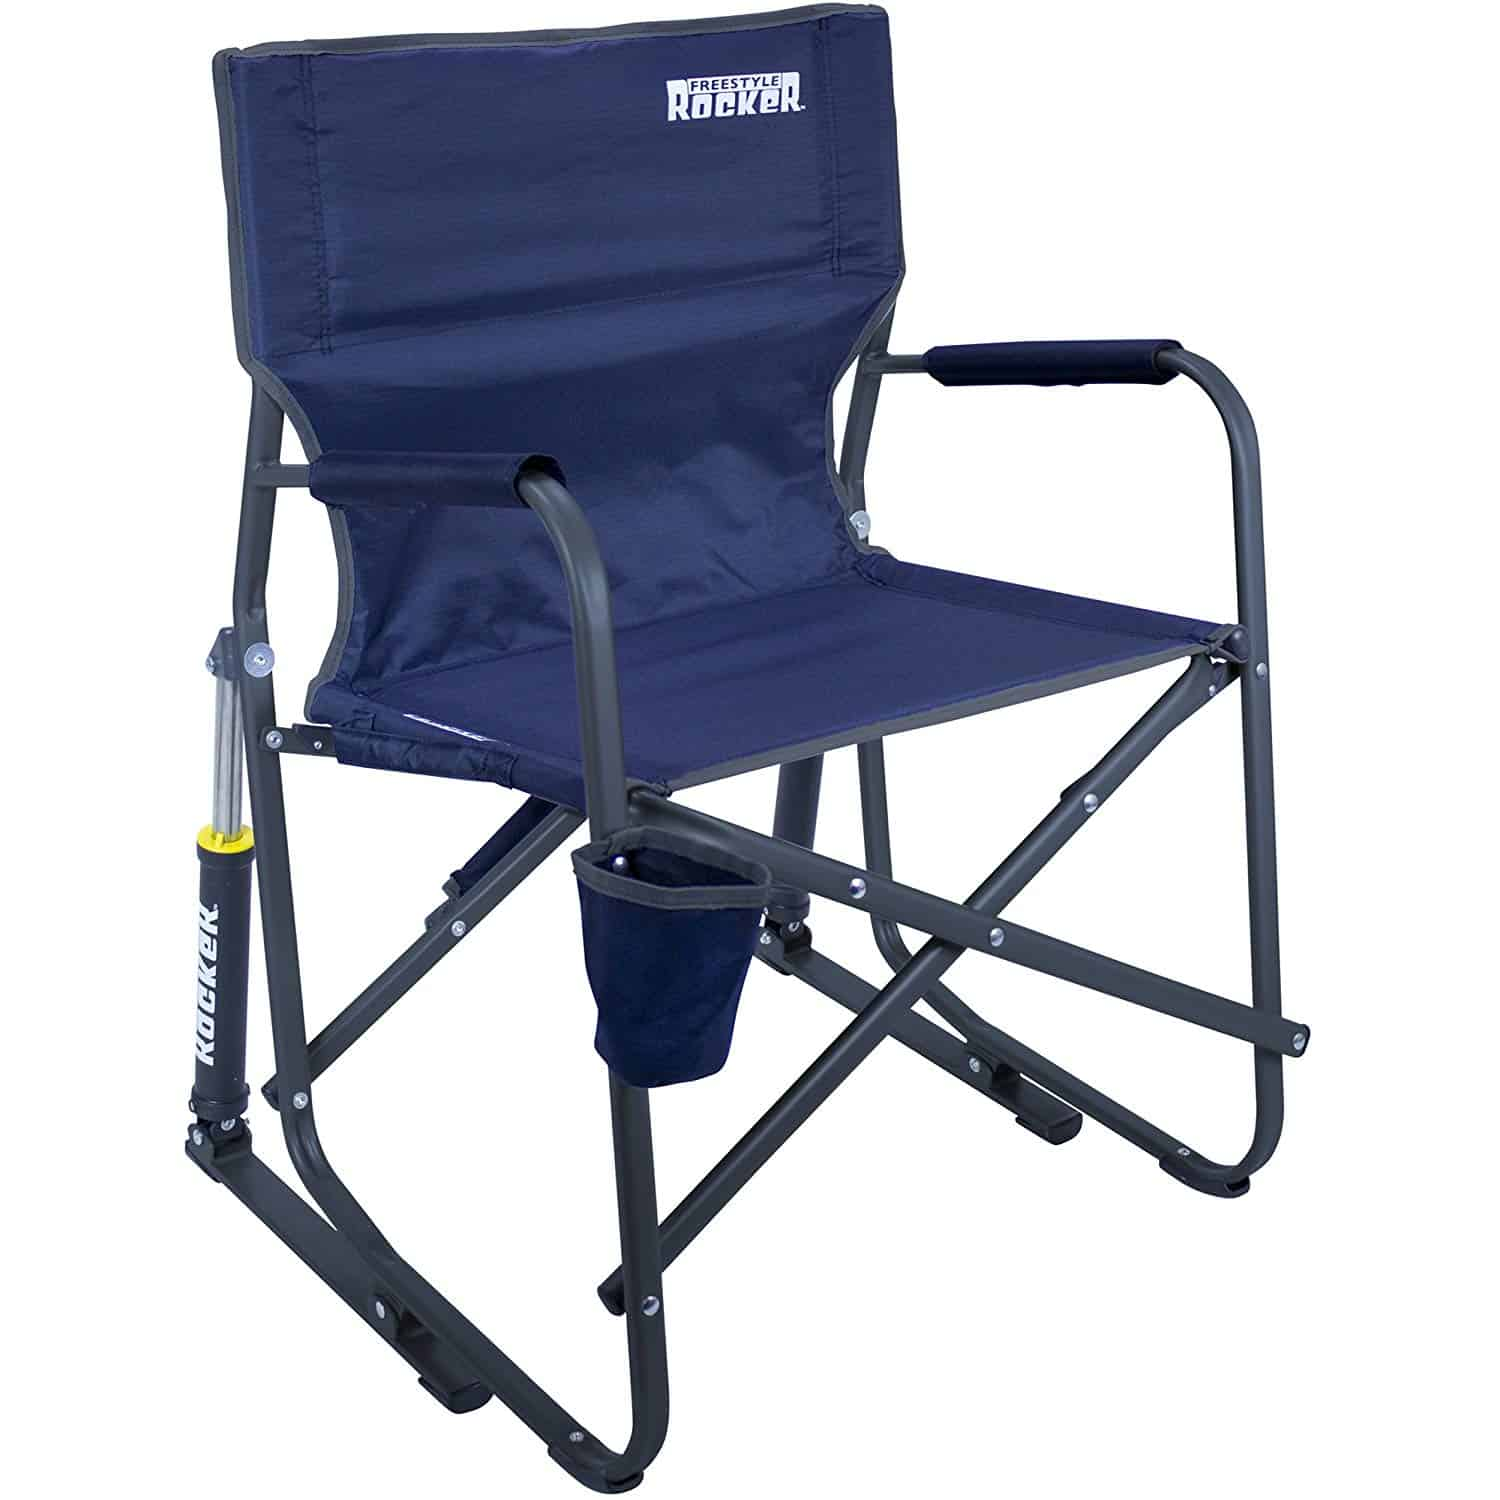 10 Best Camping Chairs Reviewed That Are Lightweight Portable 2019